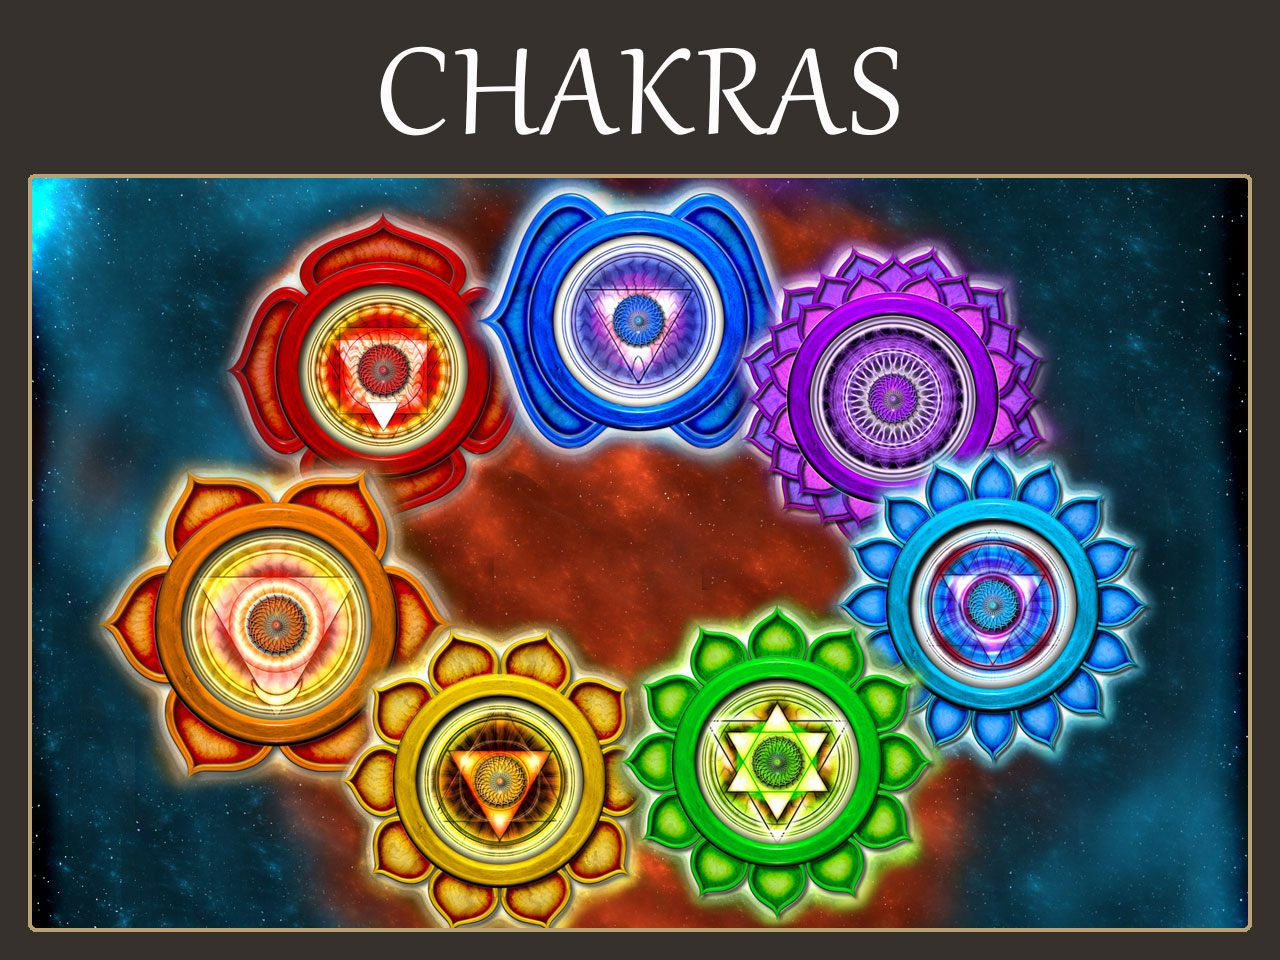 7 chakra colors symbols meanings chakras symbolism meanings 1280x960 izmirmasajfo